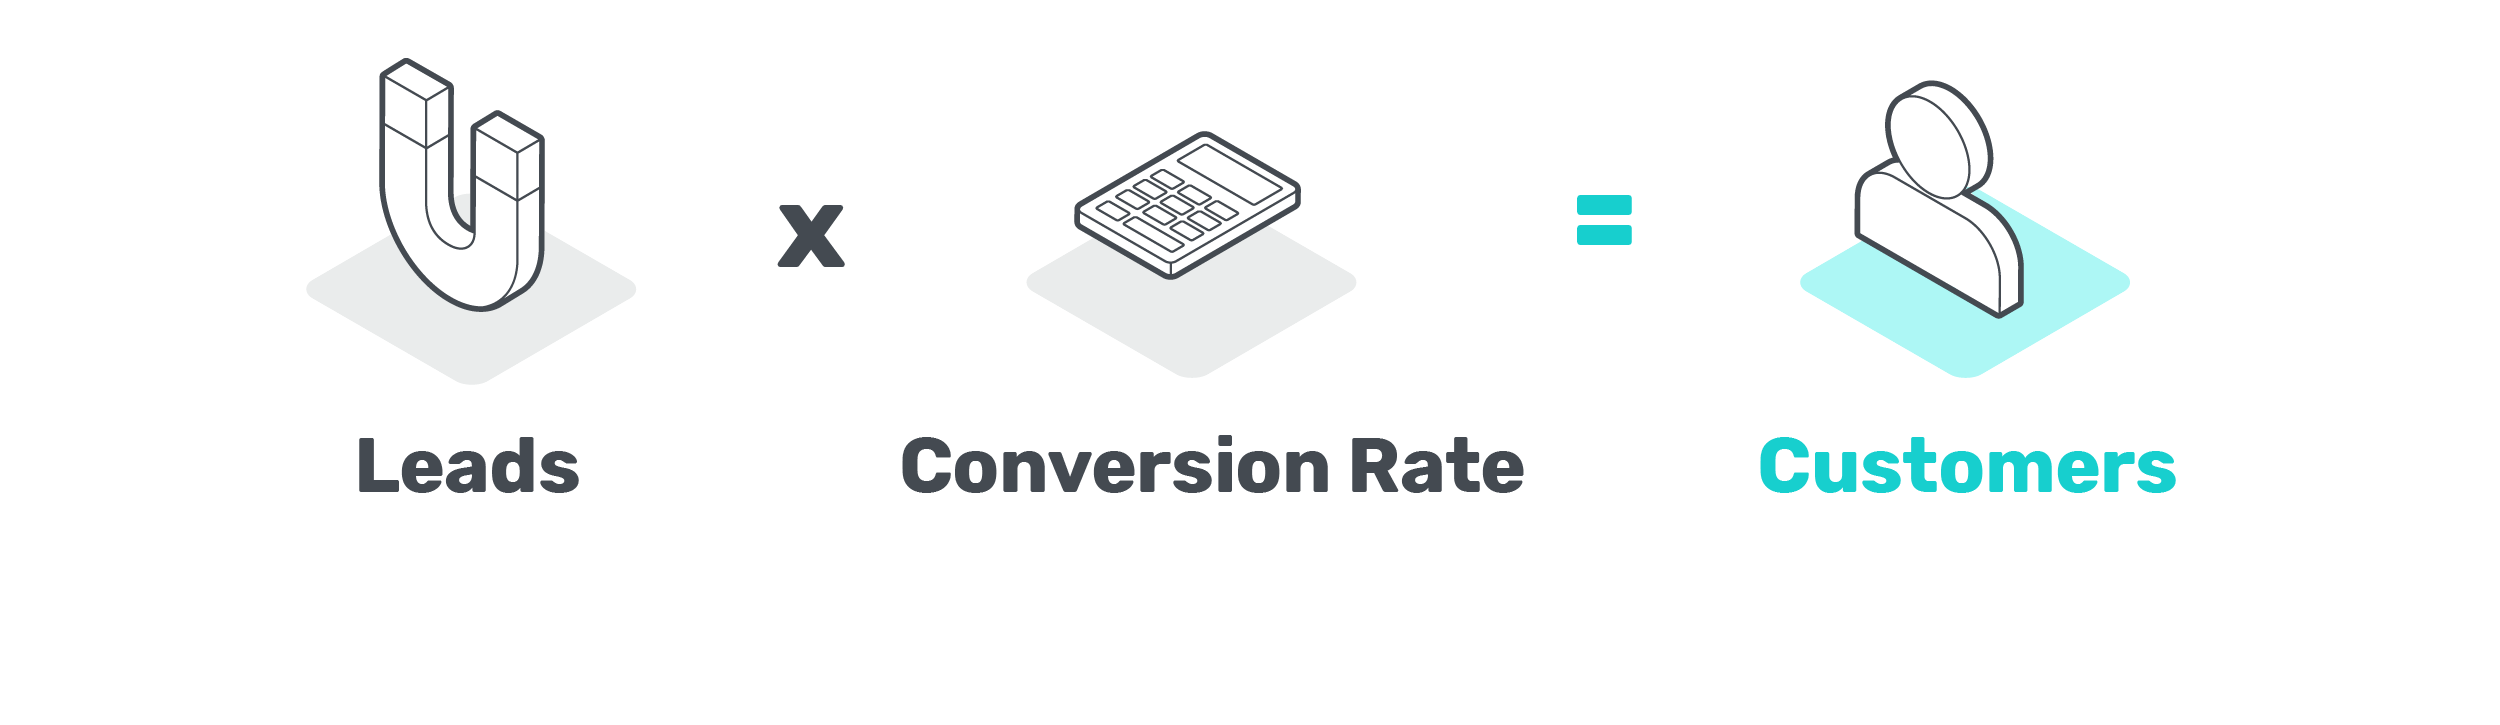 Leads x conversion rate = customers